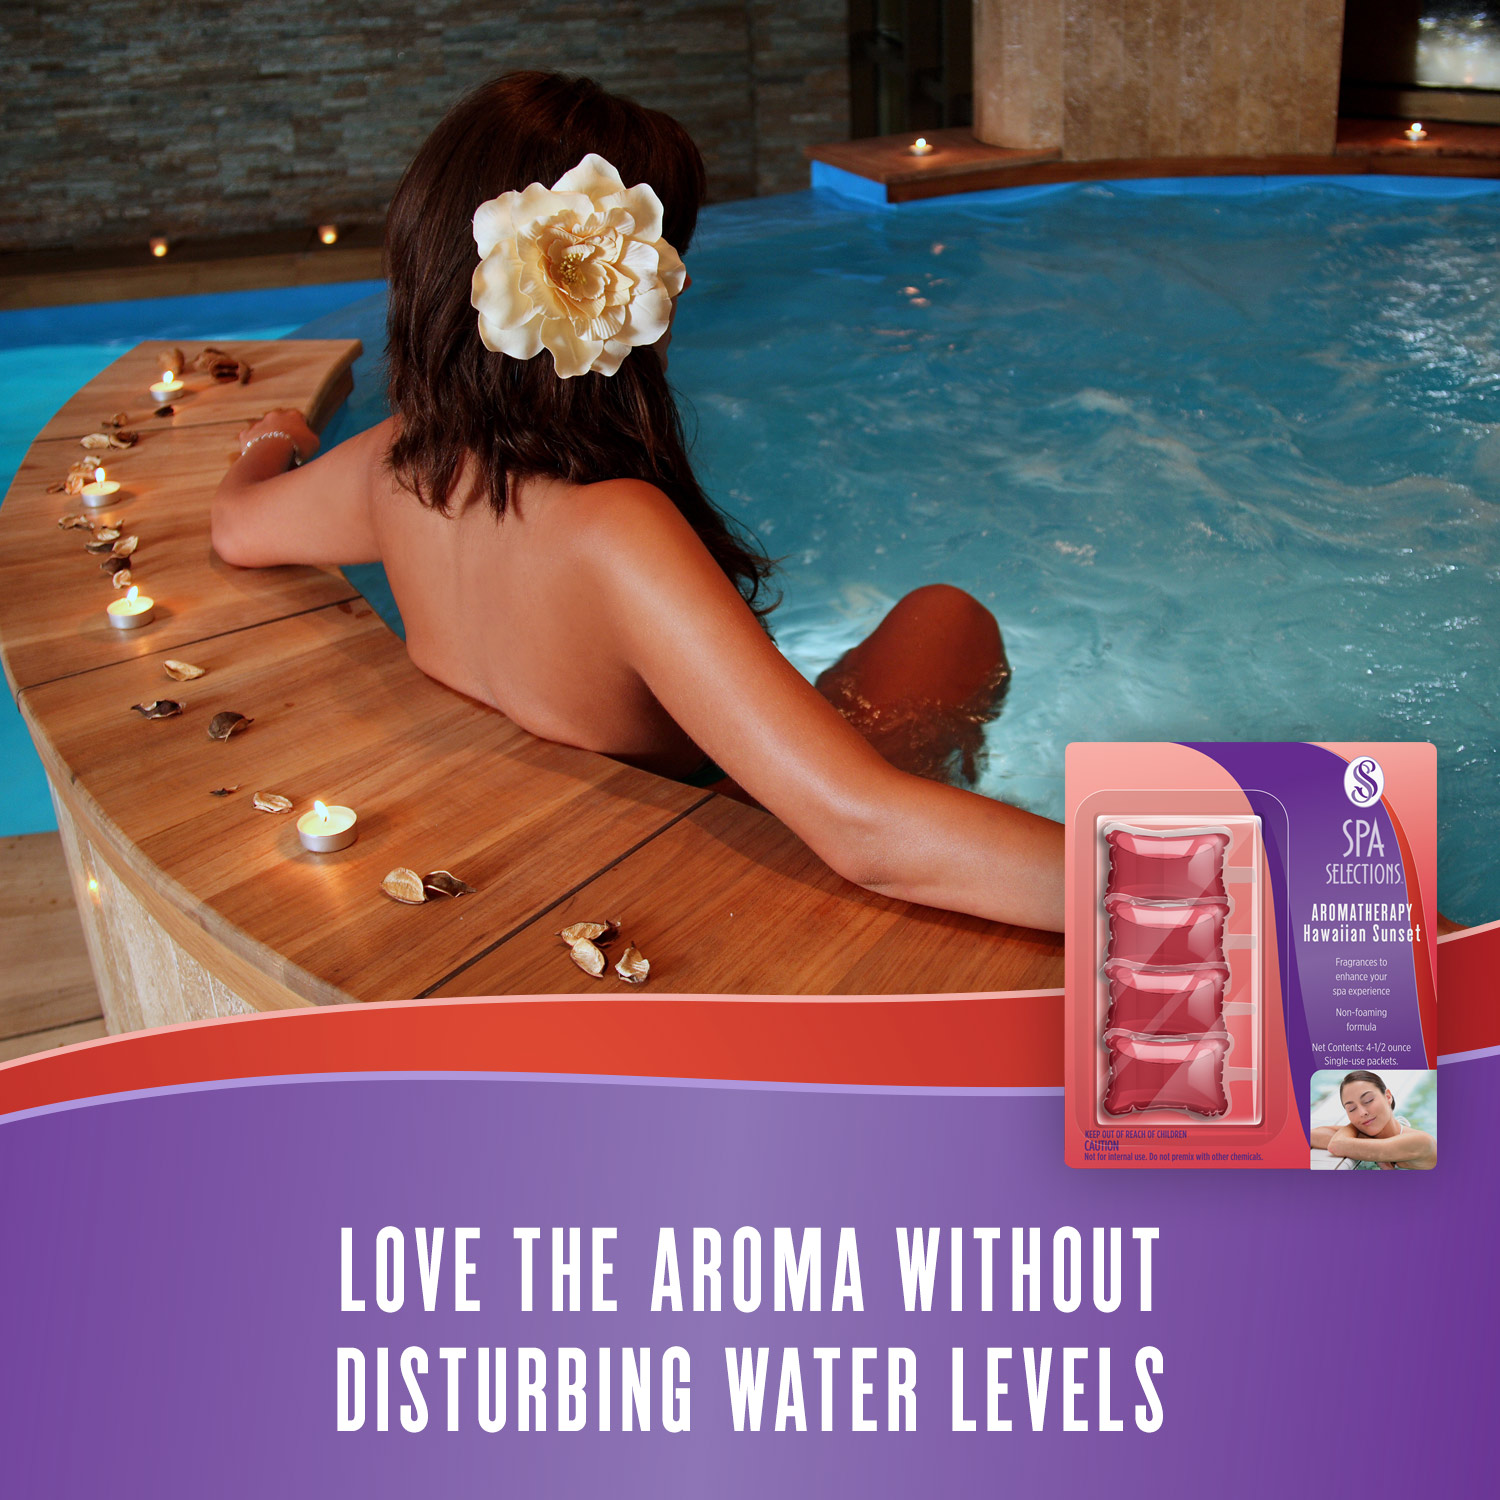 Woman enjoying an indoor spa with wooden siding and Spa Selections Hawaiian Sunset aromatherapy. Love the aroma without disturbing water levels.